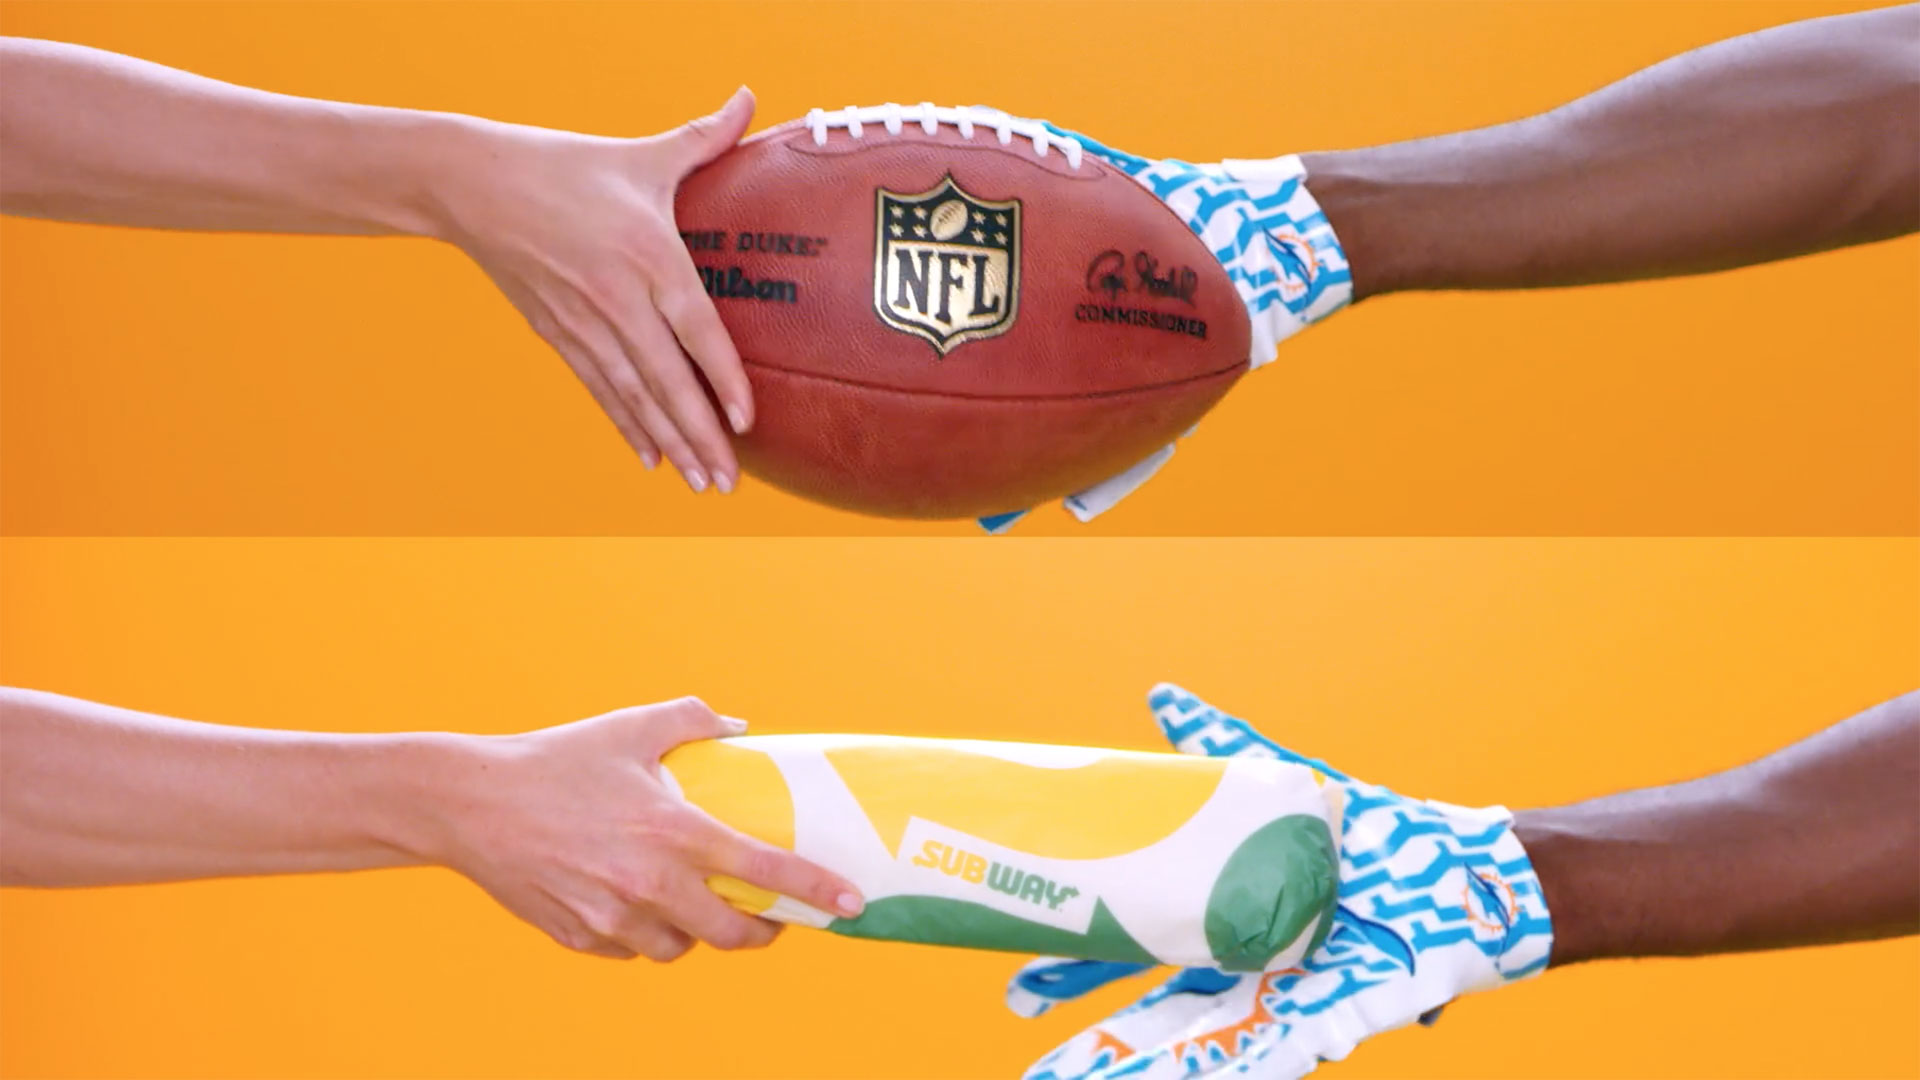 Subway Perfect partners exchanging football and subway